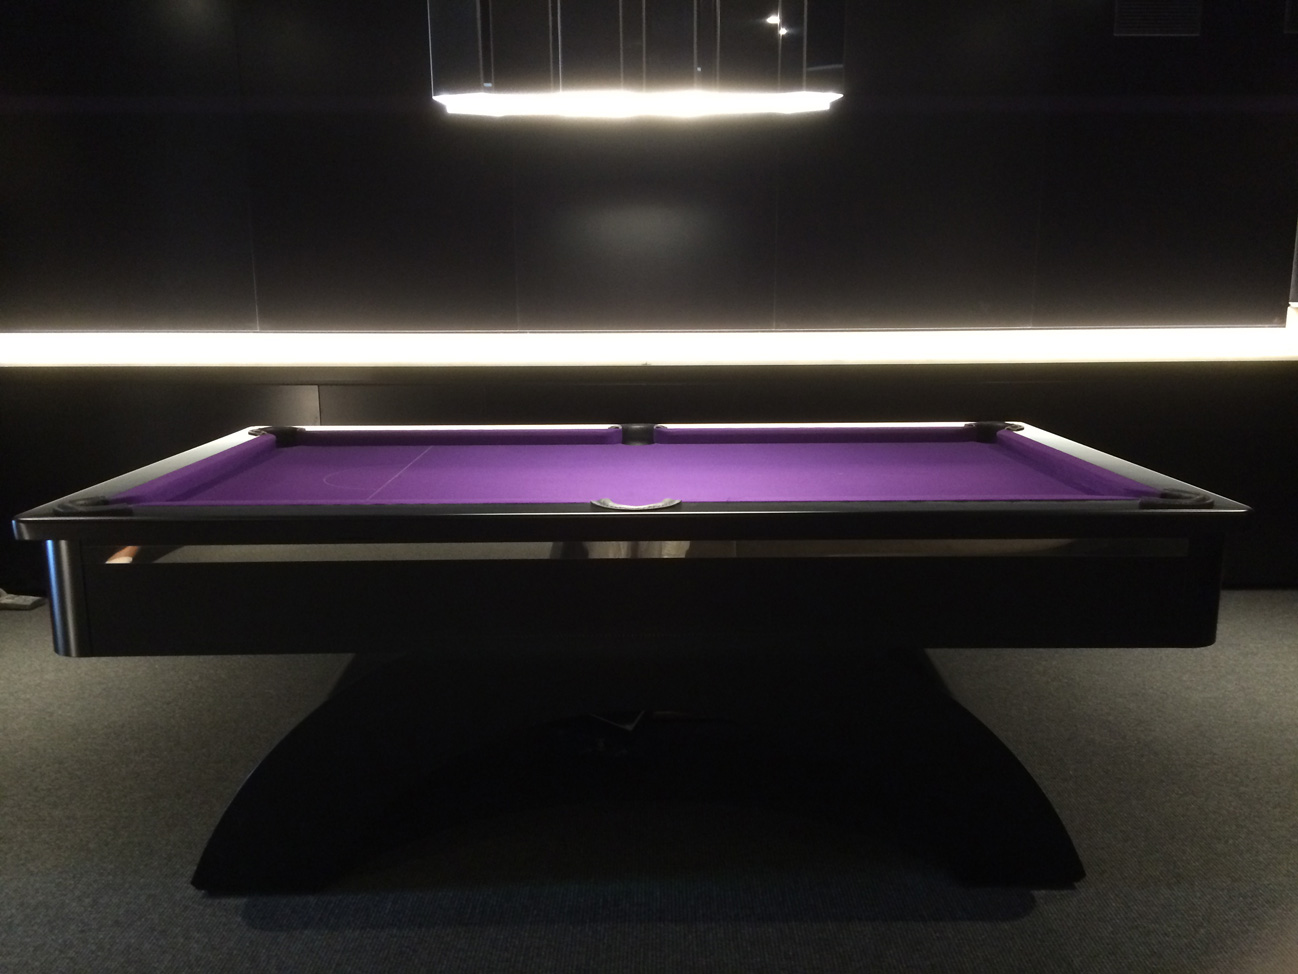 Black Chrome Strip Arched Contemporary UK Pool Table : 2401 from www.snookerandpooltablecompany.com size 1298 x 974 jpeg 245kB